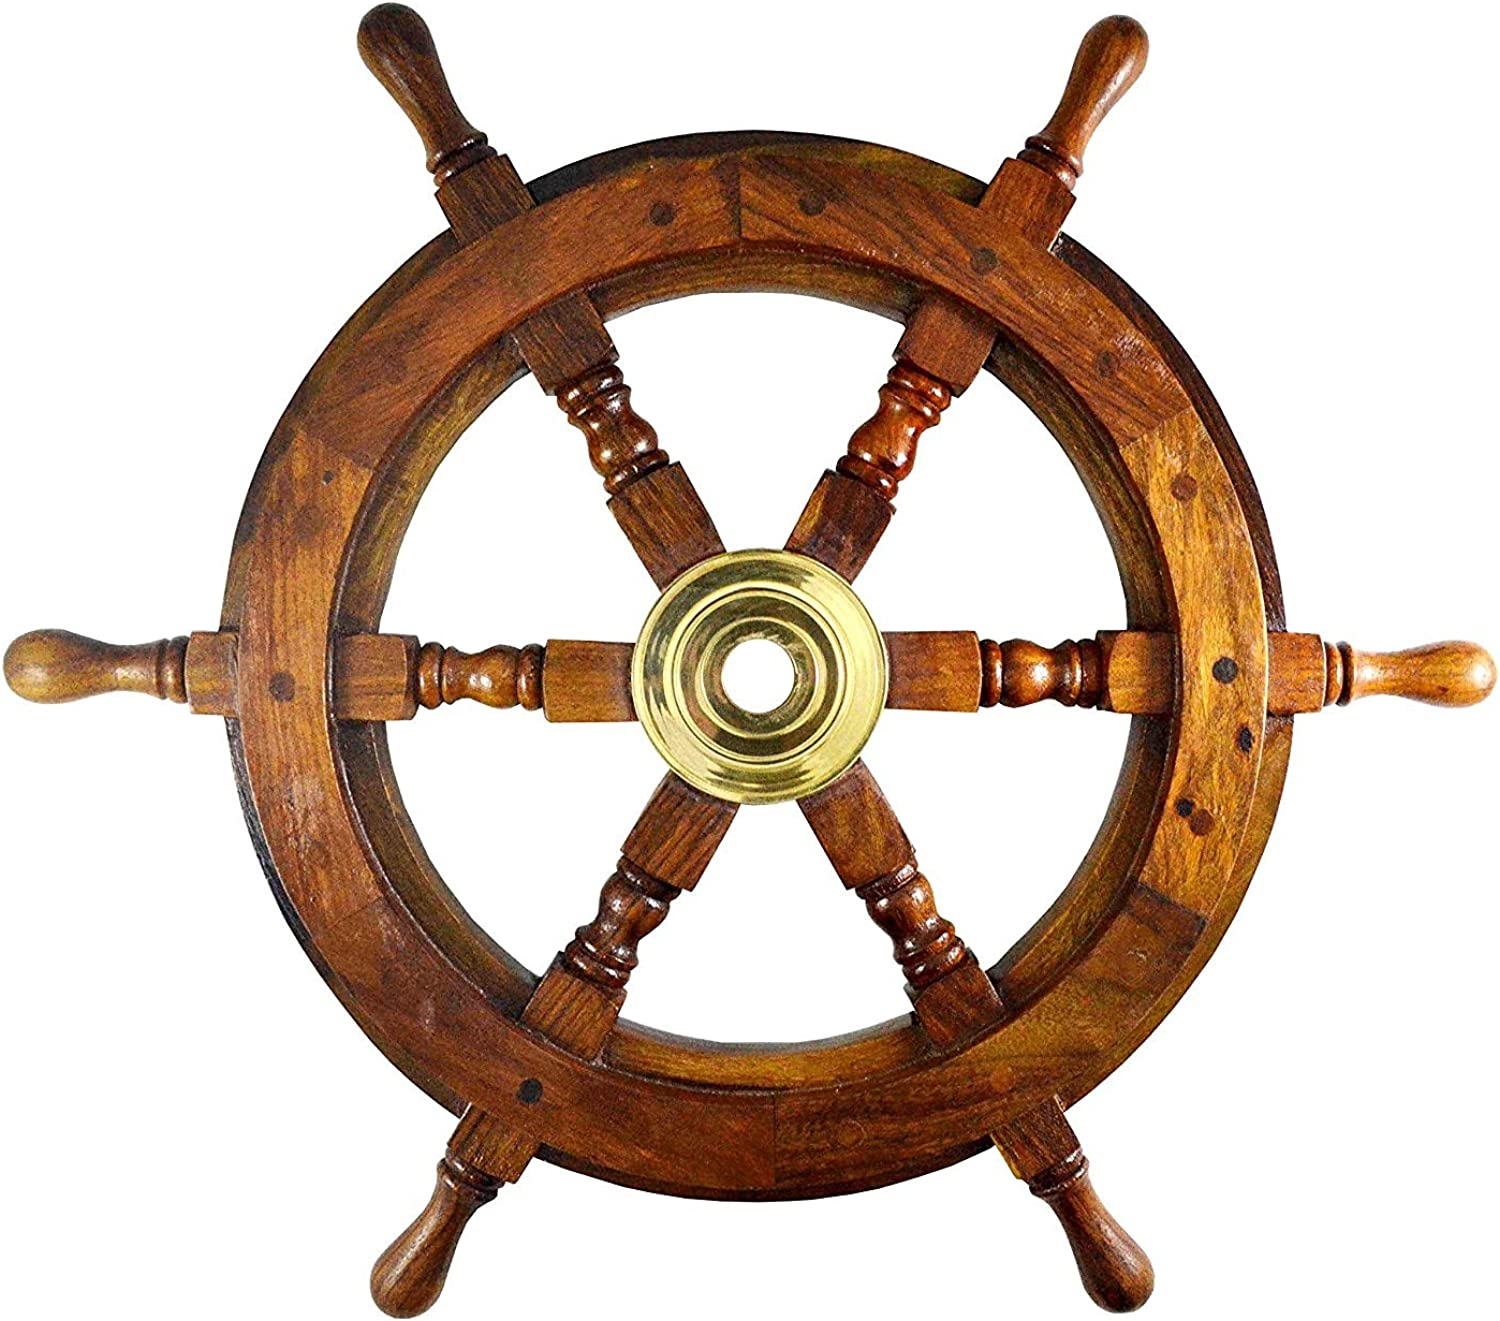 18/'/' BLACK WOOD Nautical Decorative Ship Wheel Captain/'s Boat Steering DECOR